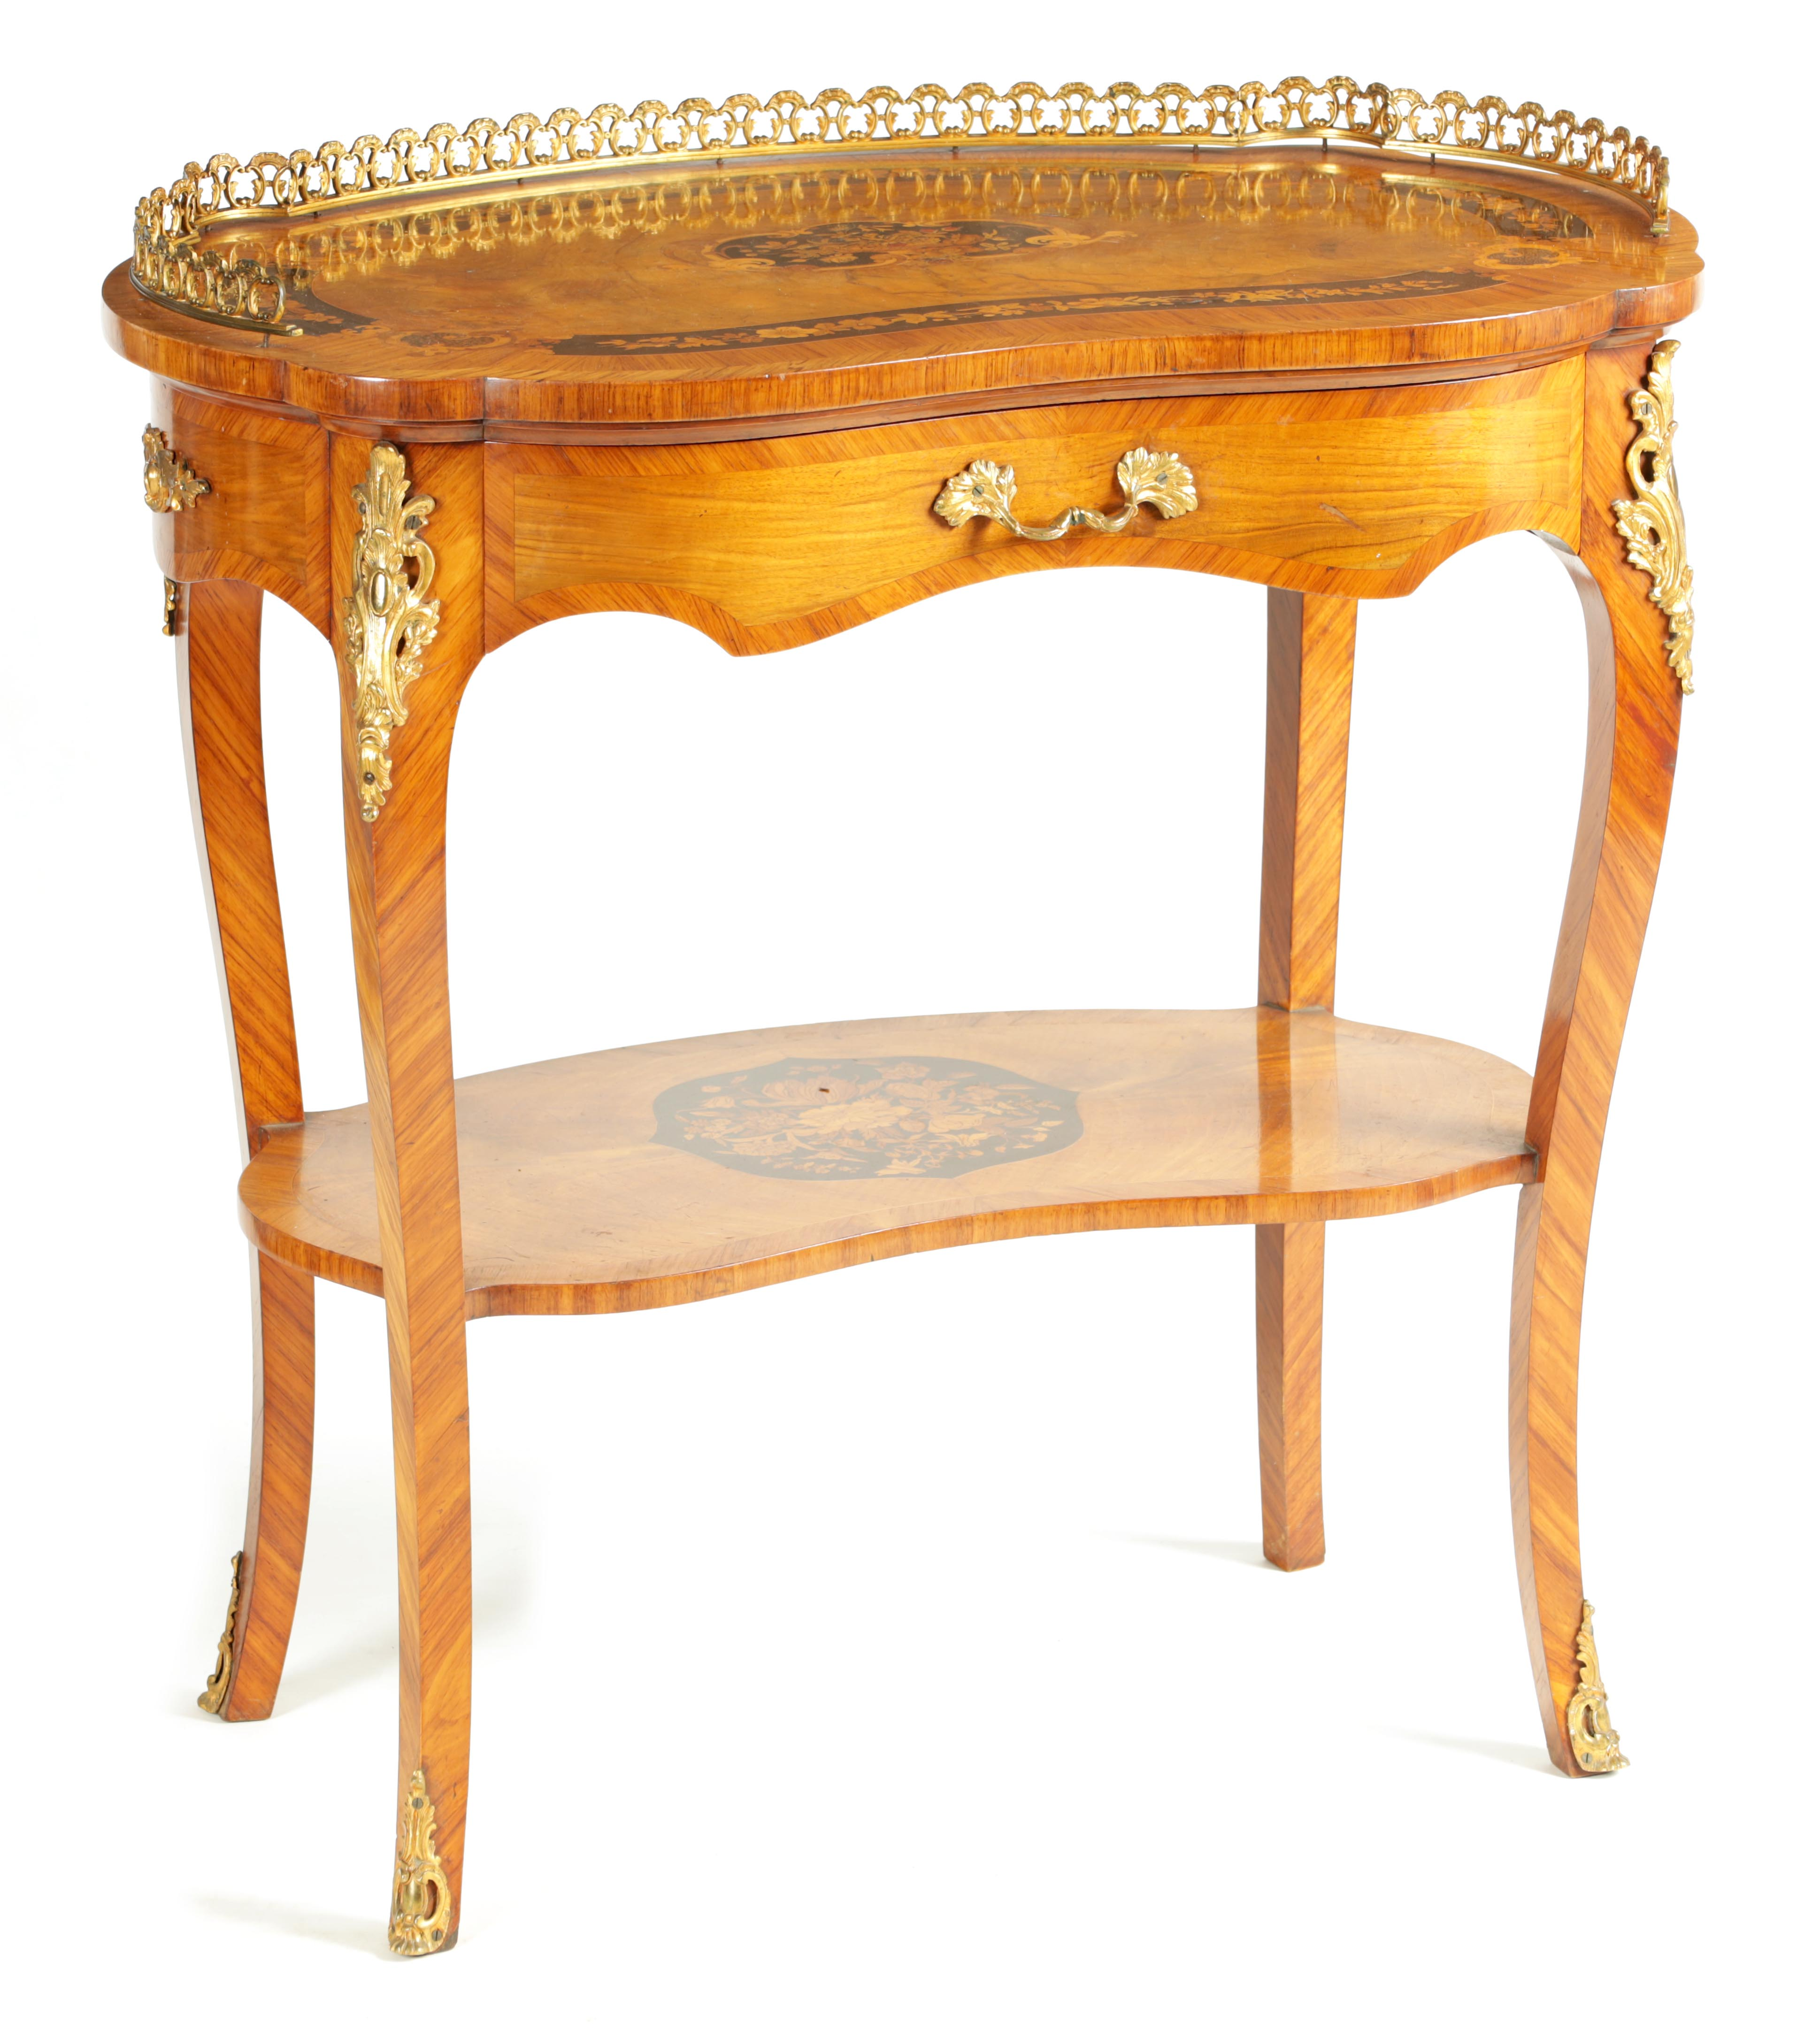 A FINE 19TH CENTURY MARQUETRY INLAID WALNUT KIDNEY SHAPED WRITING TABLE with raised brass